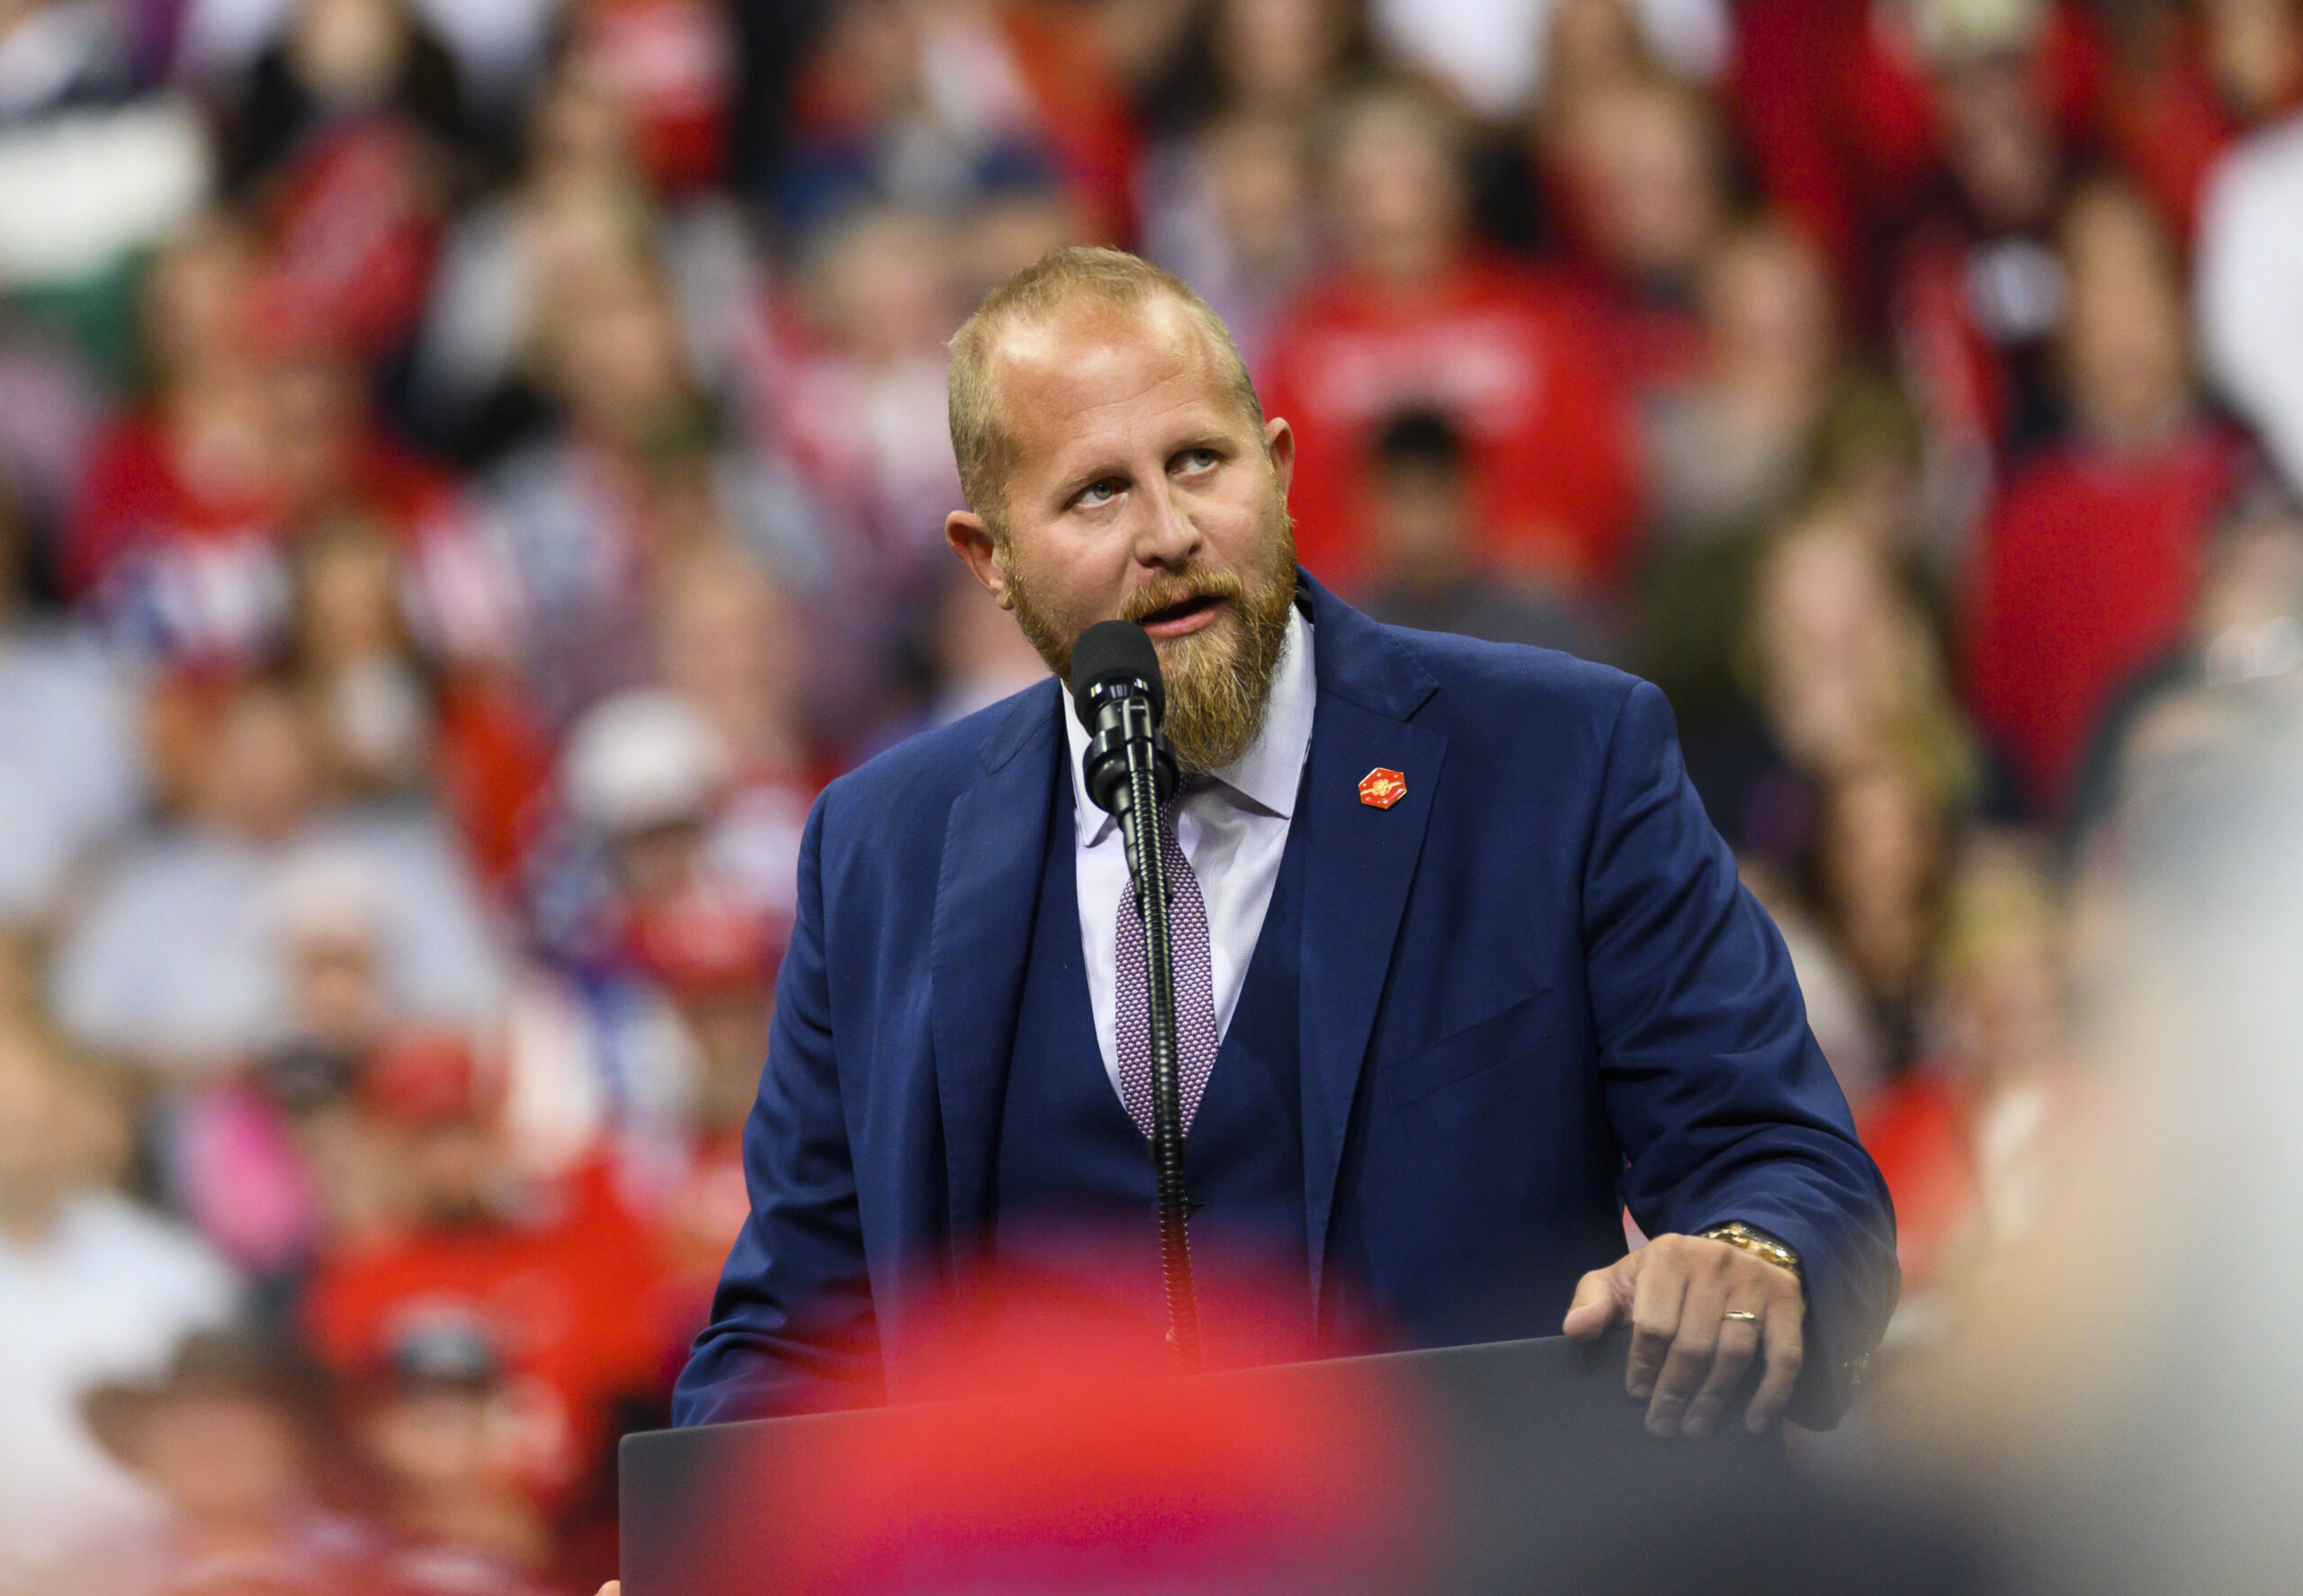 Brad Parscale's Wife Bruised Following 'Altercation' With Former Trump Campaign Manager, Says Police Report